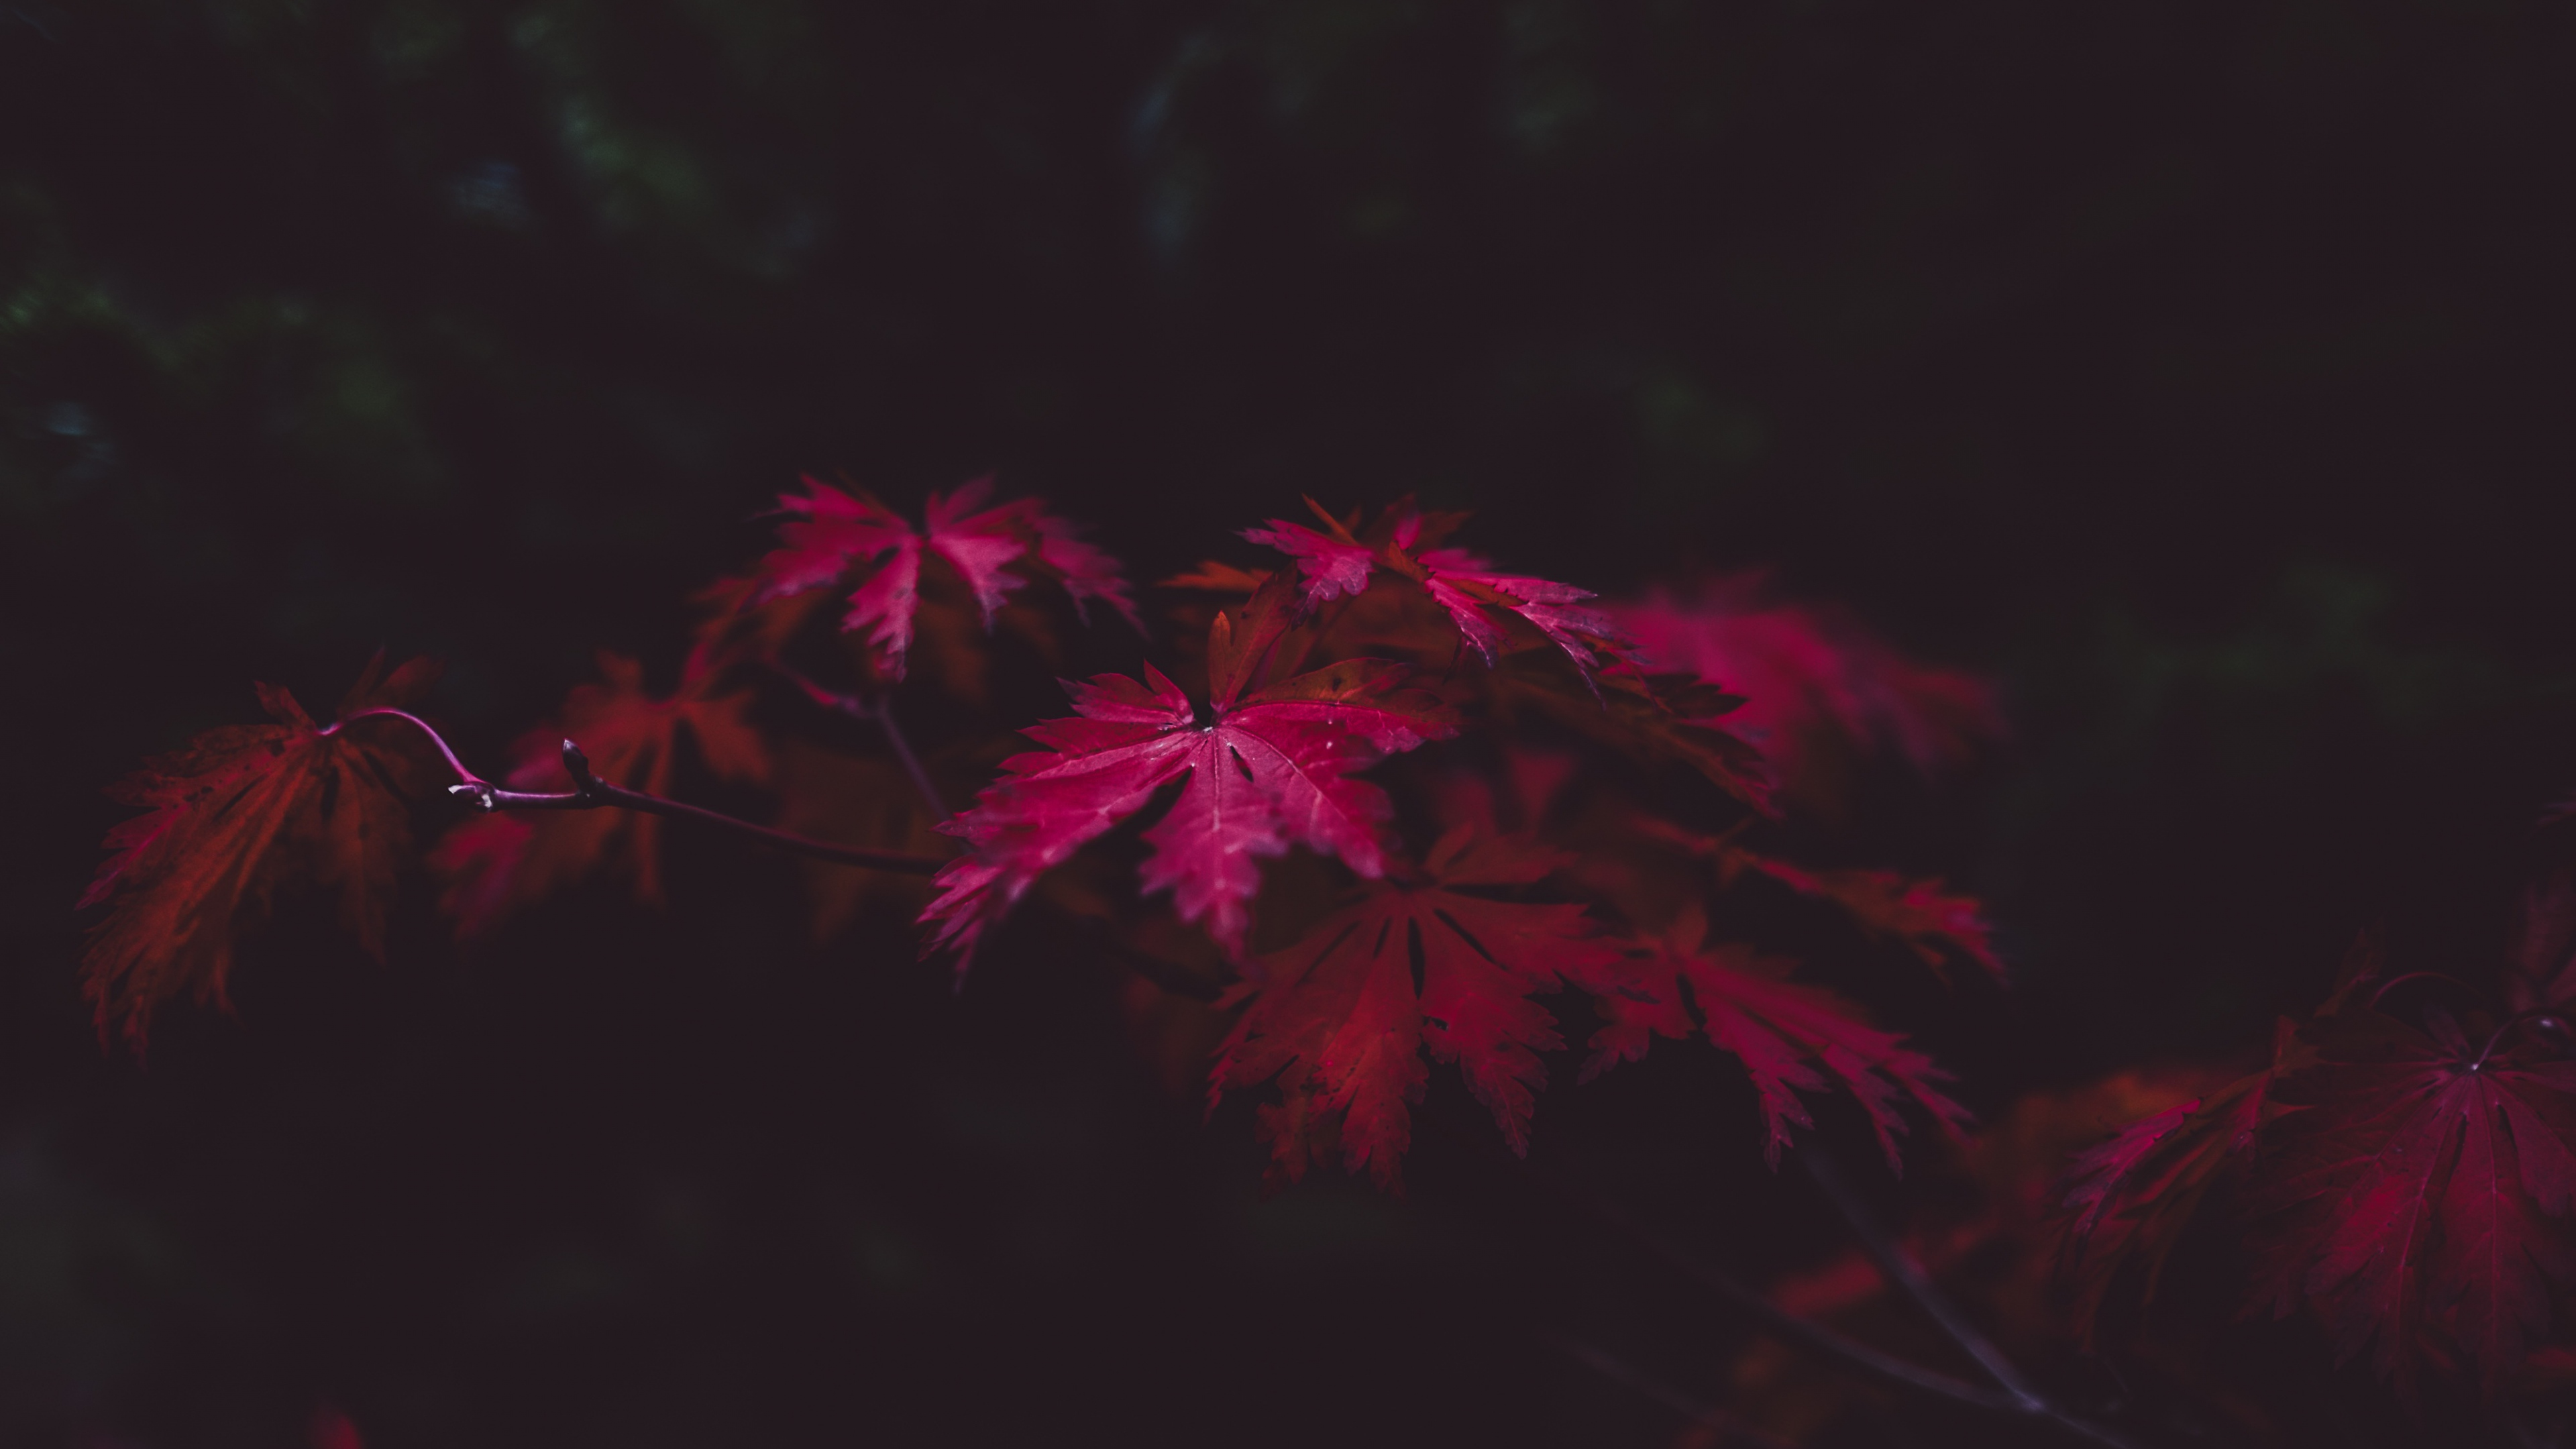 480x800 Red Leaves 4k Galaxy Note,HTC Desire,Nokia Lumia